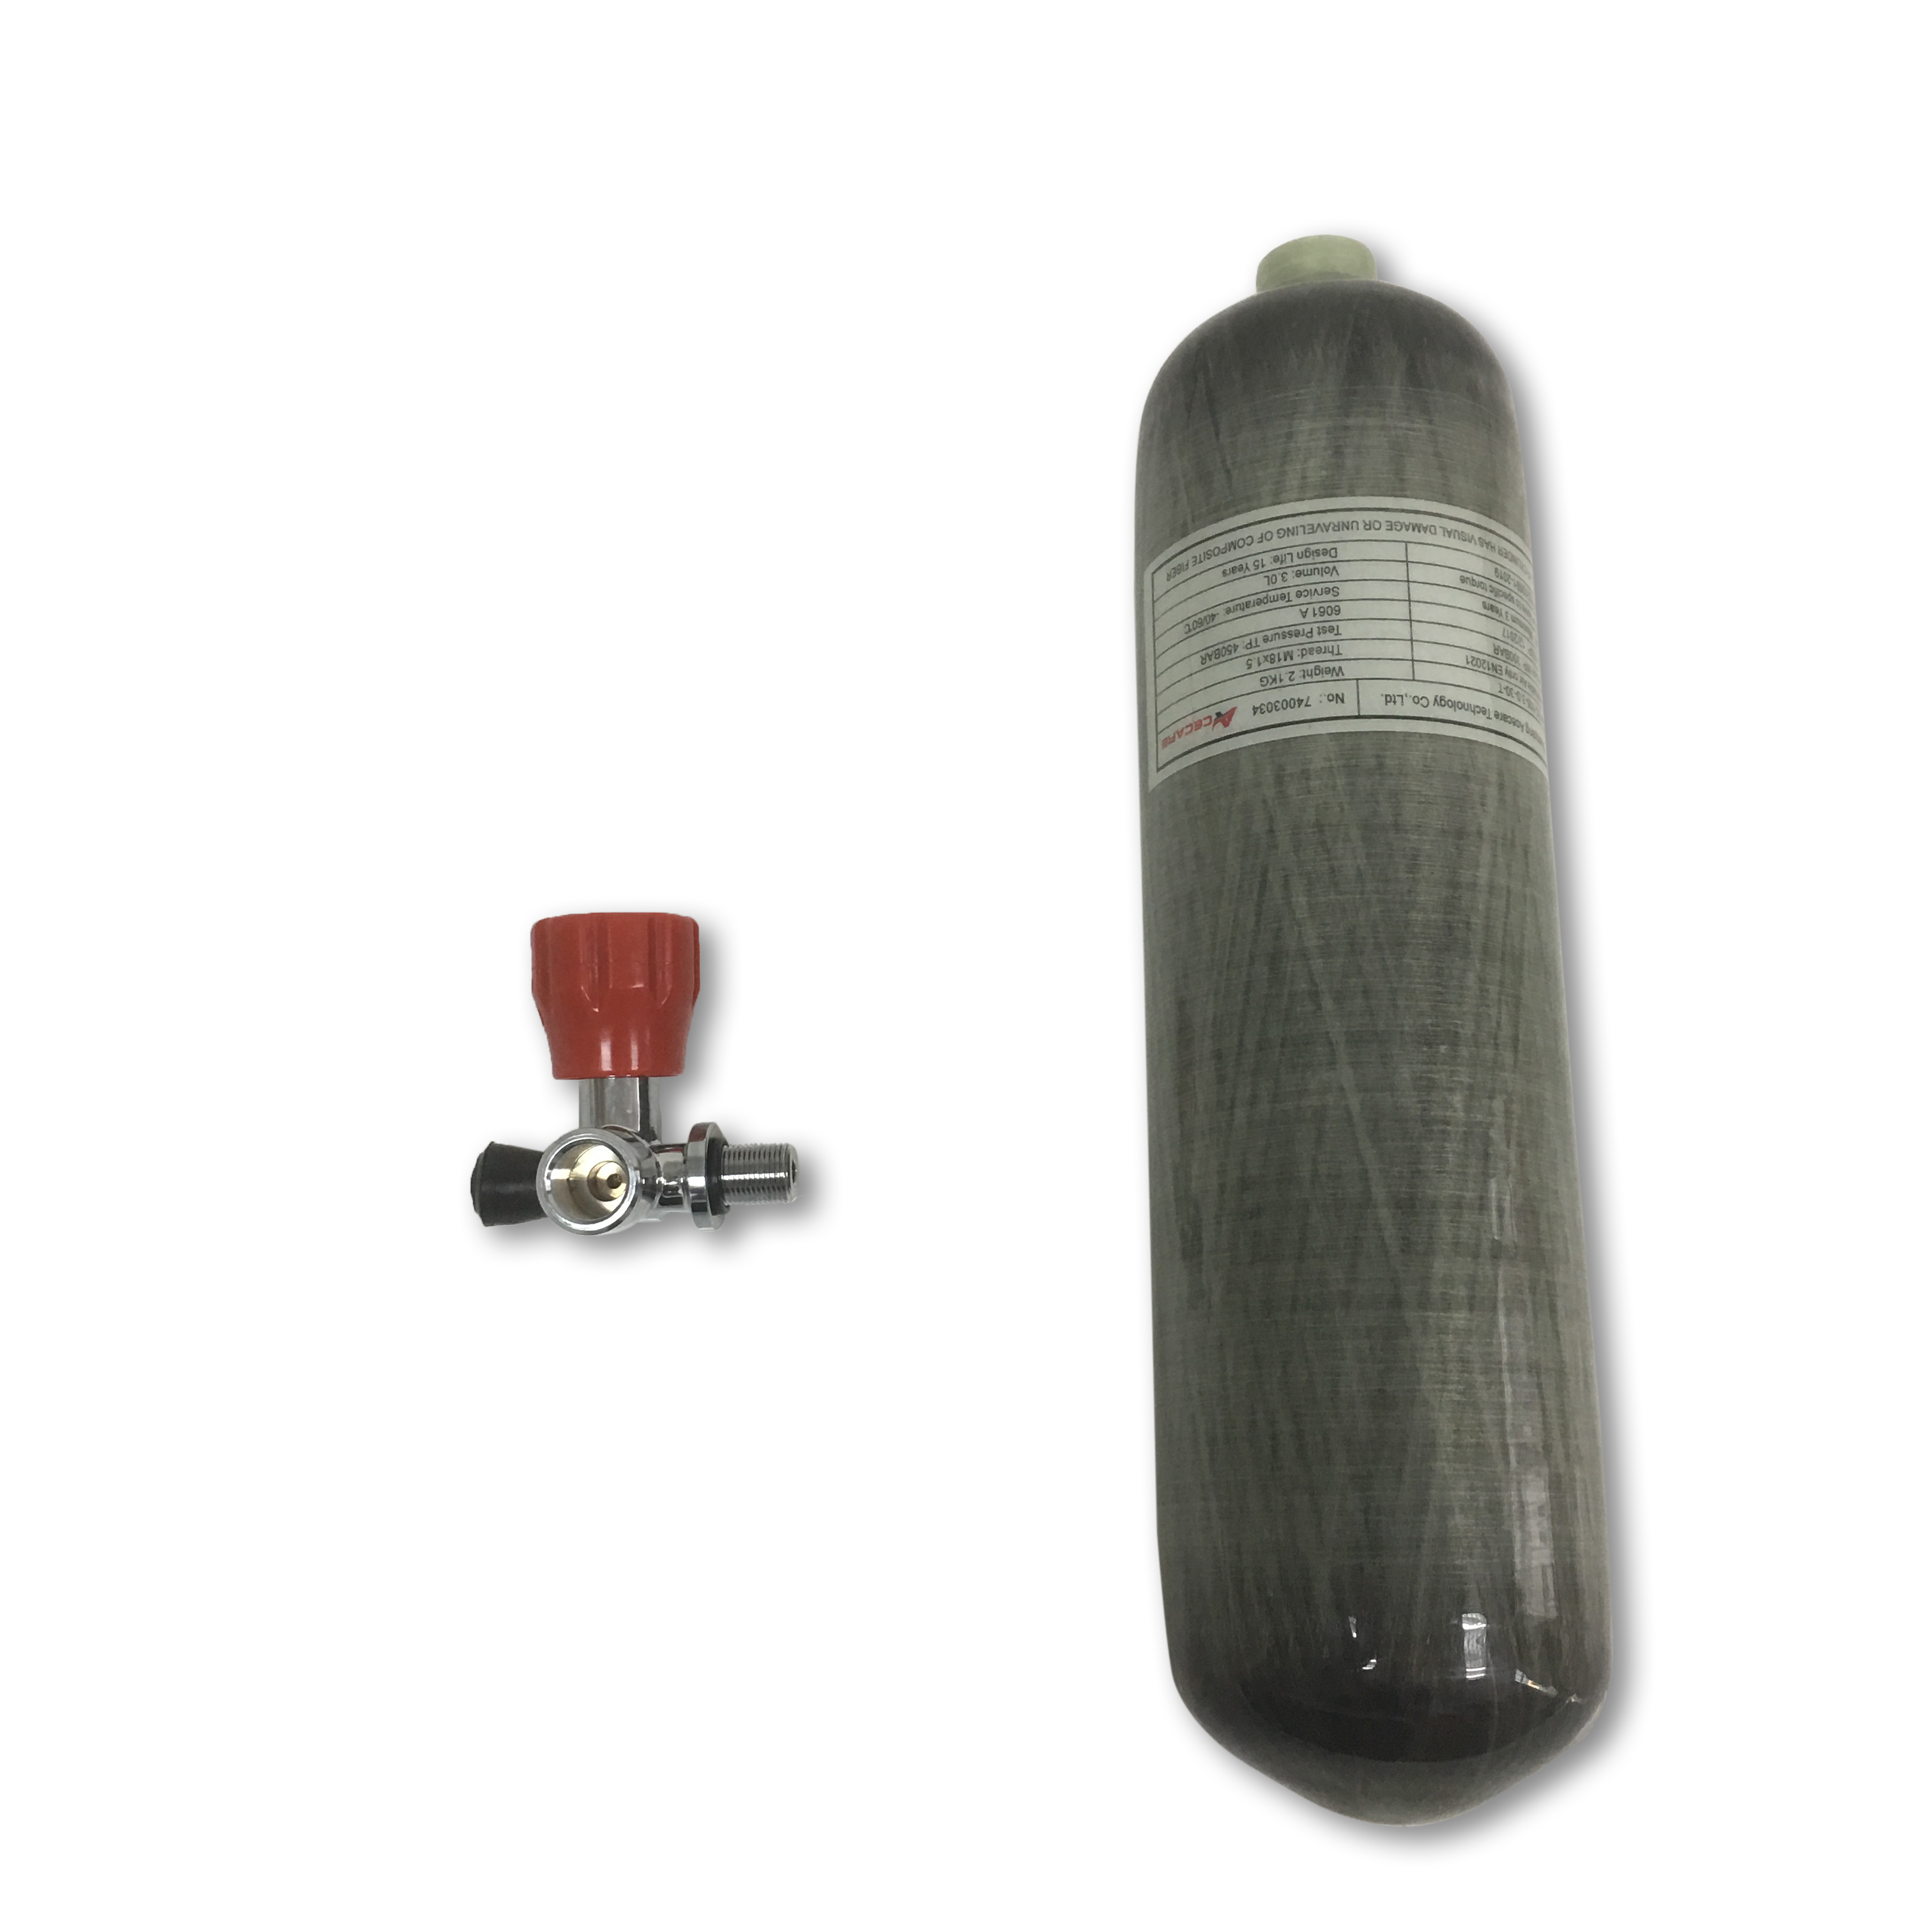 AC103 Cylinder Hpa Small 3L Hunting Scuba Rifle Compressed Air Diving 300bar Paintball Tank Pcp Airforce Condor Co2 Airsoft 2019